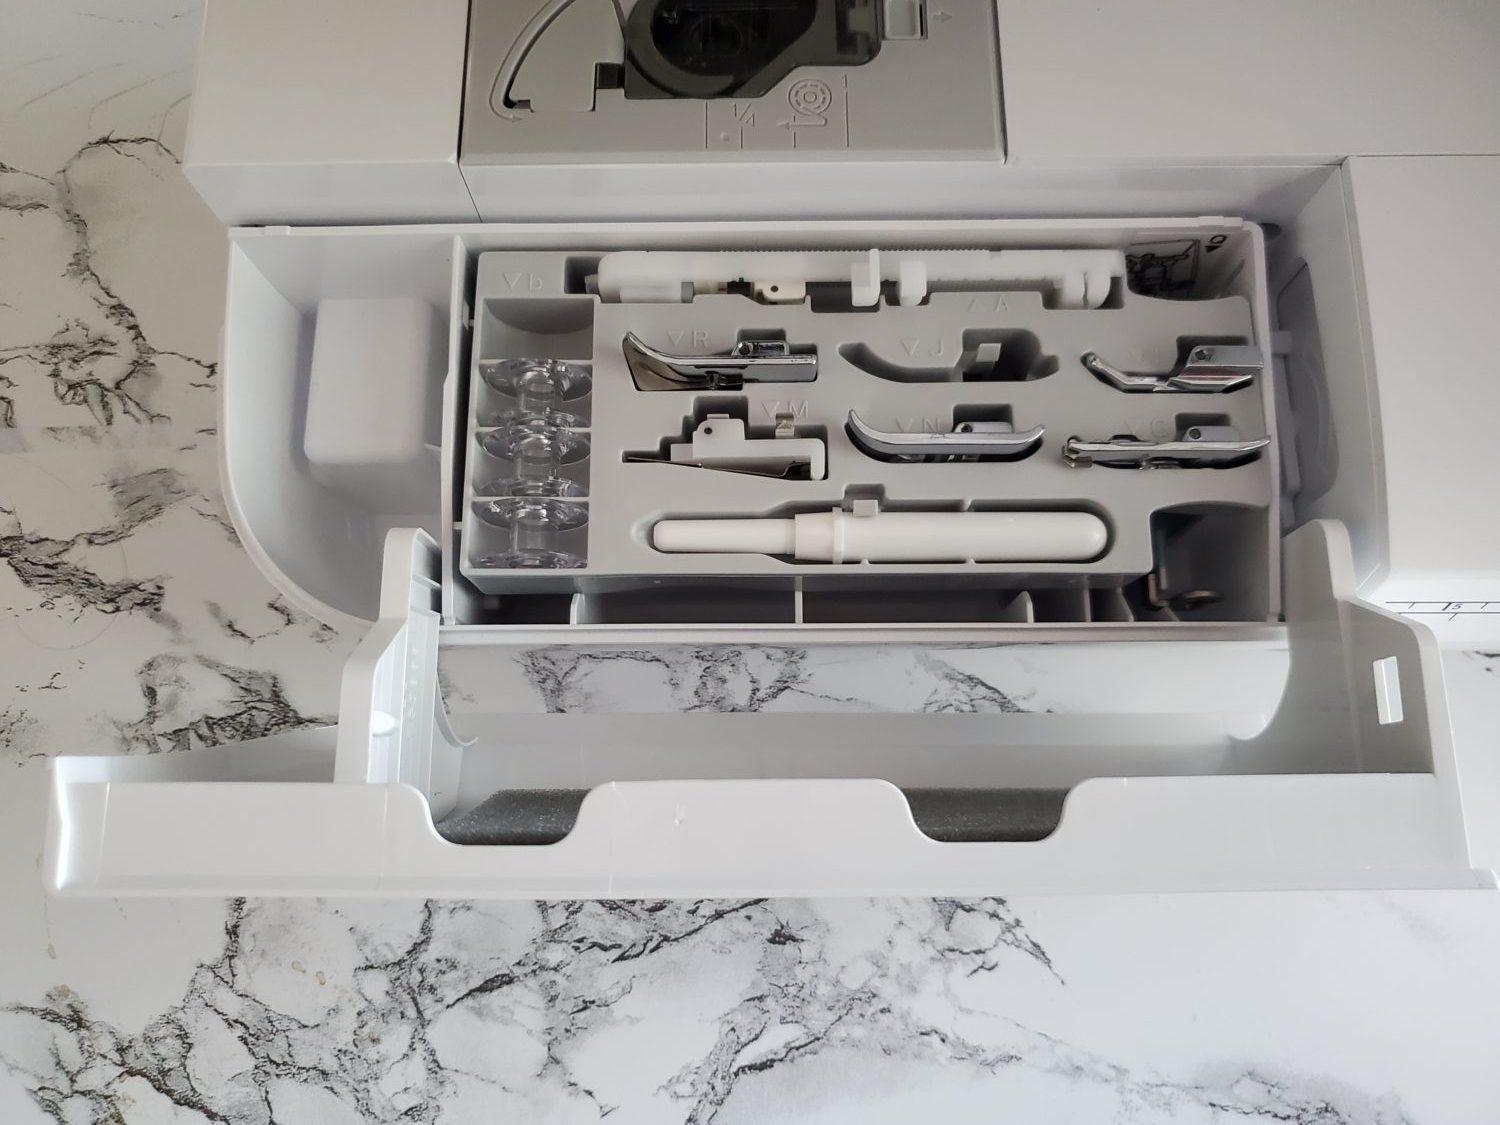 brother se1900 accessories compartment